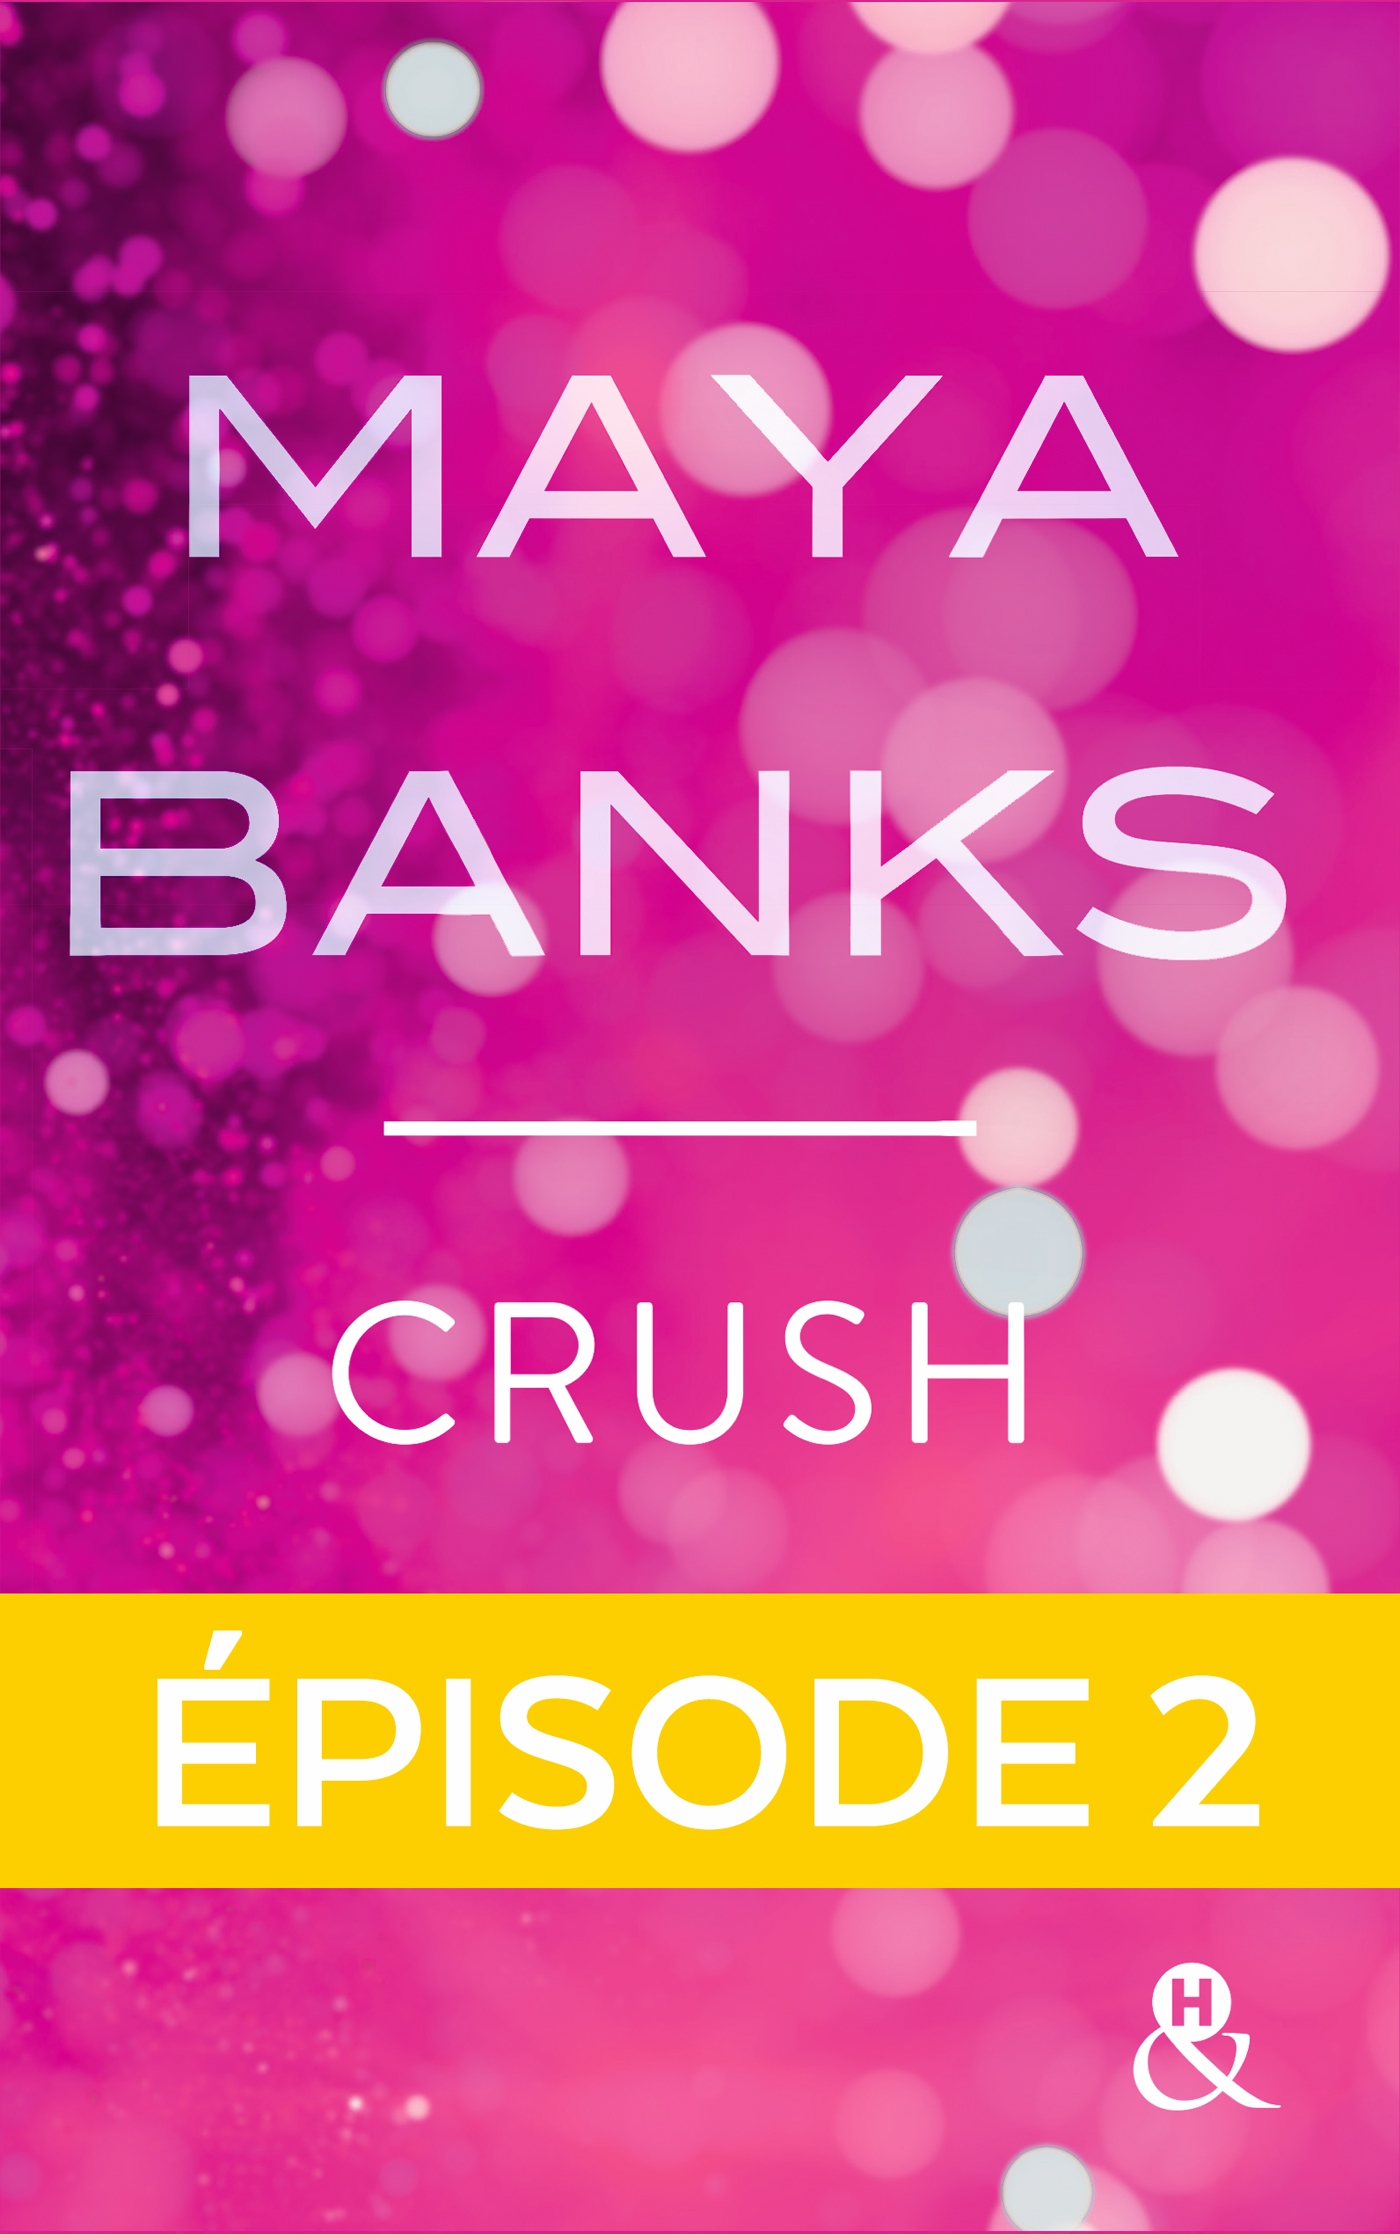 Crush - Episode 2